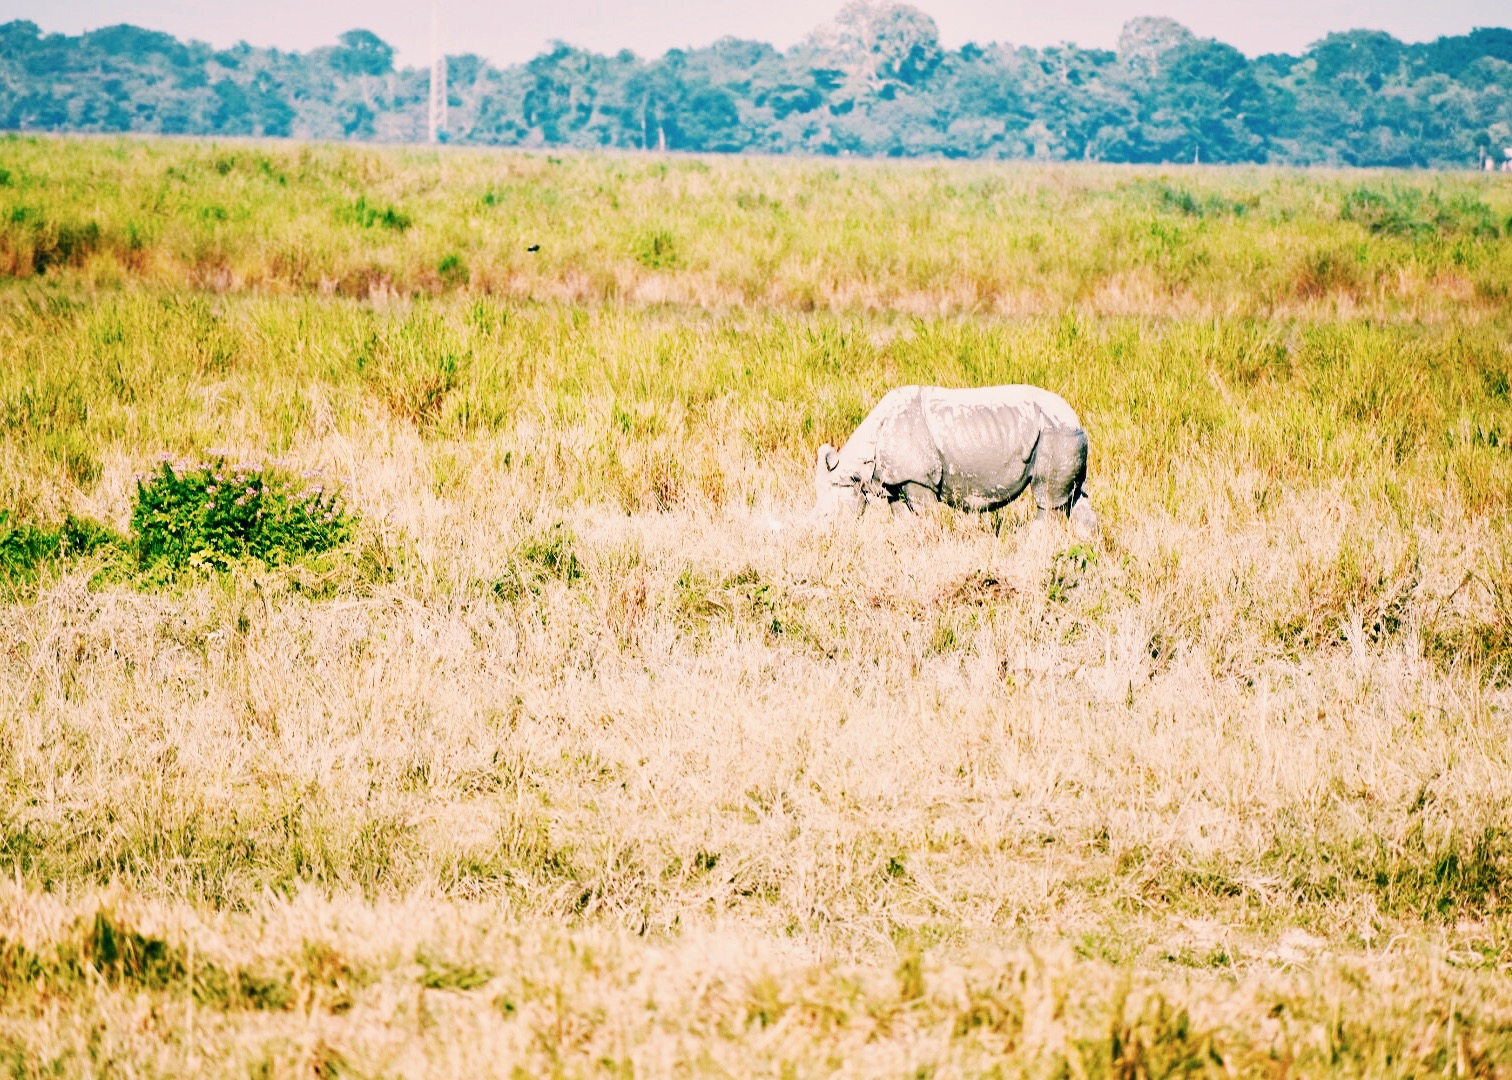 A rhino in the distance